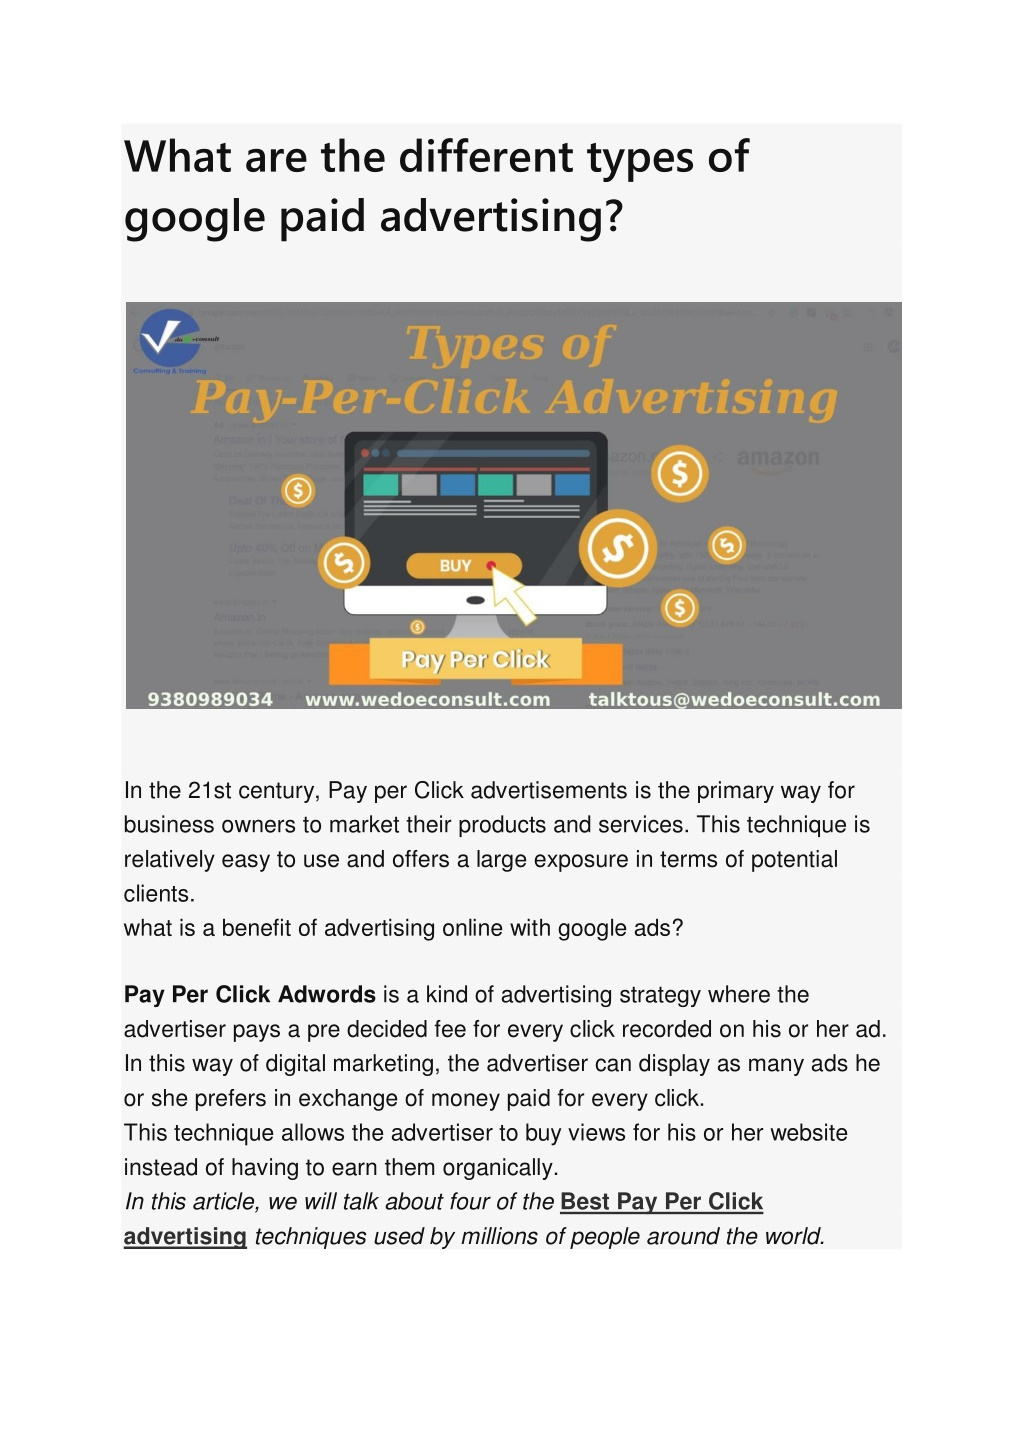 What are the different types of google paid advertising?